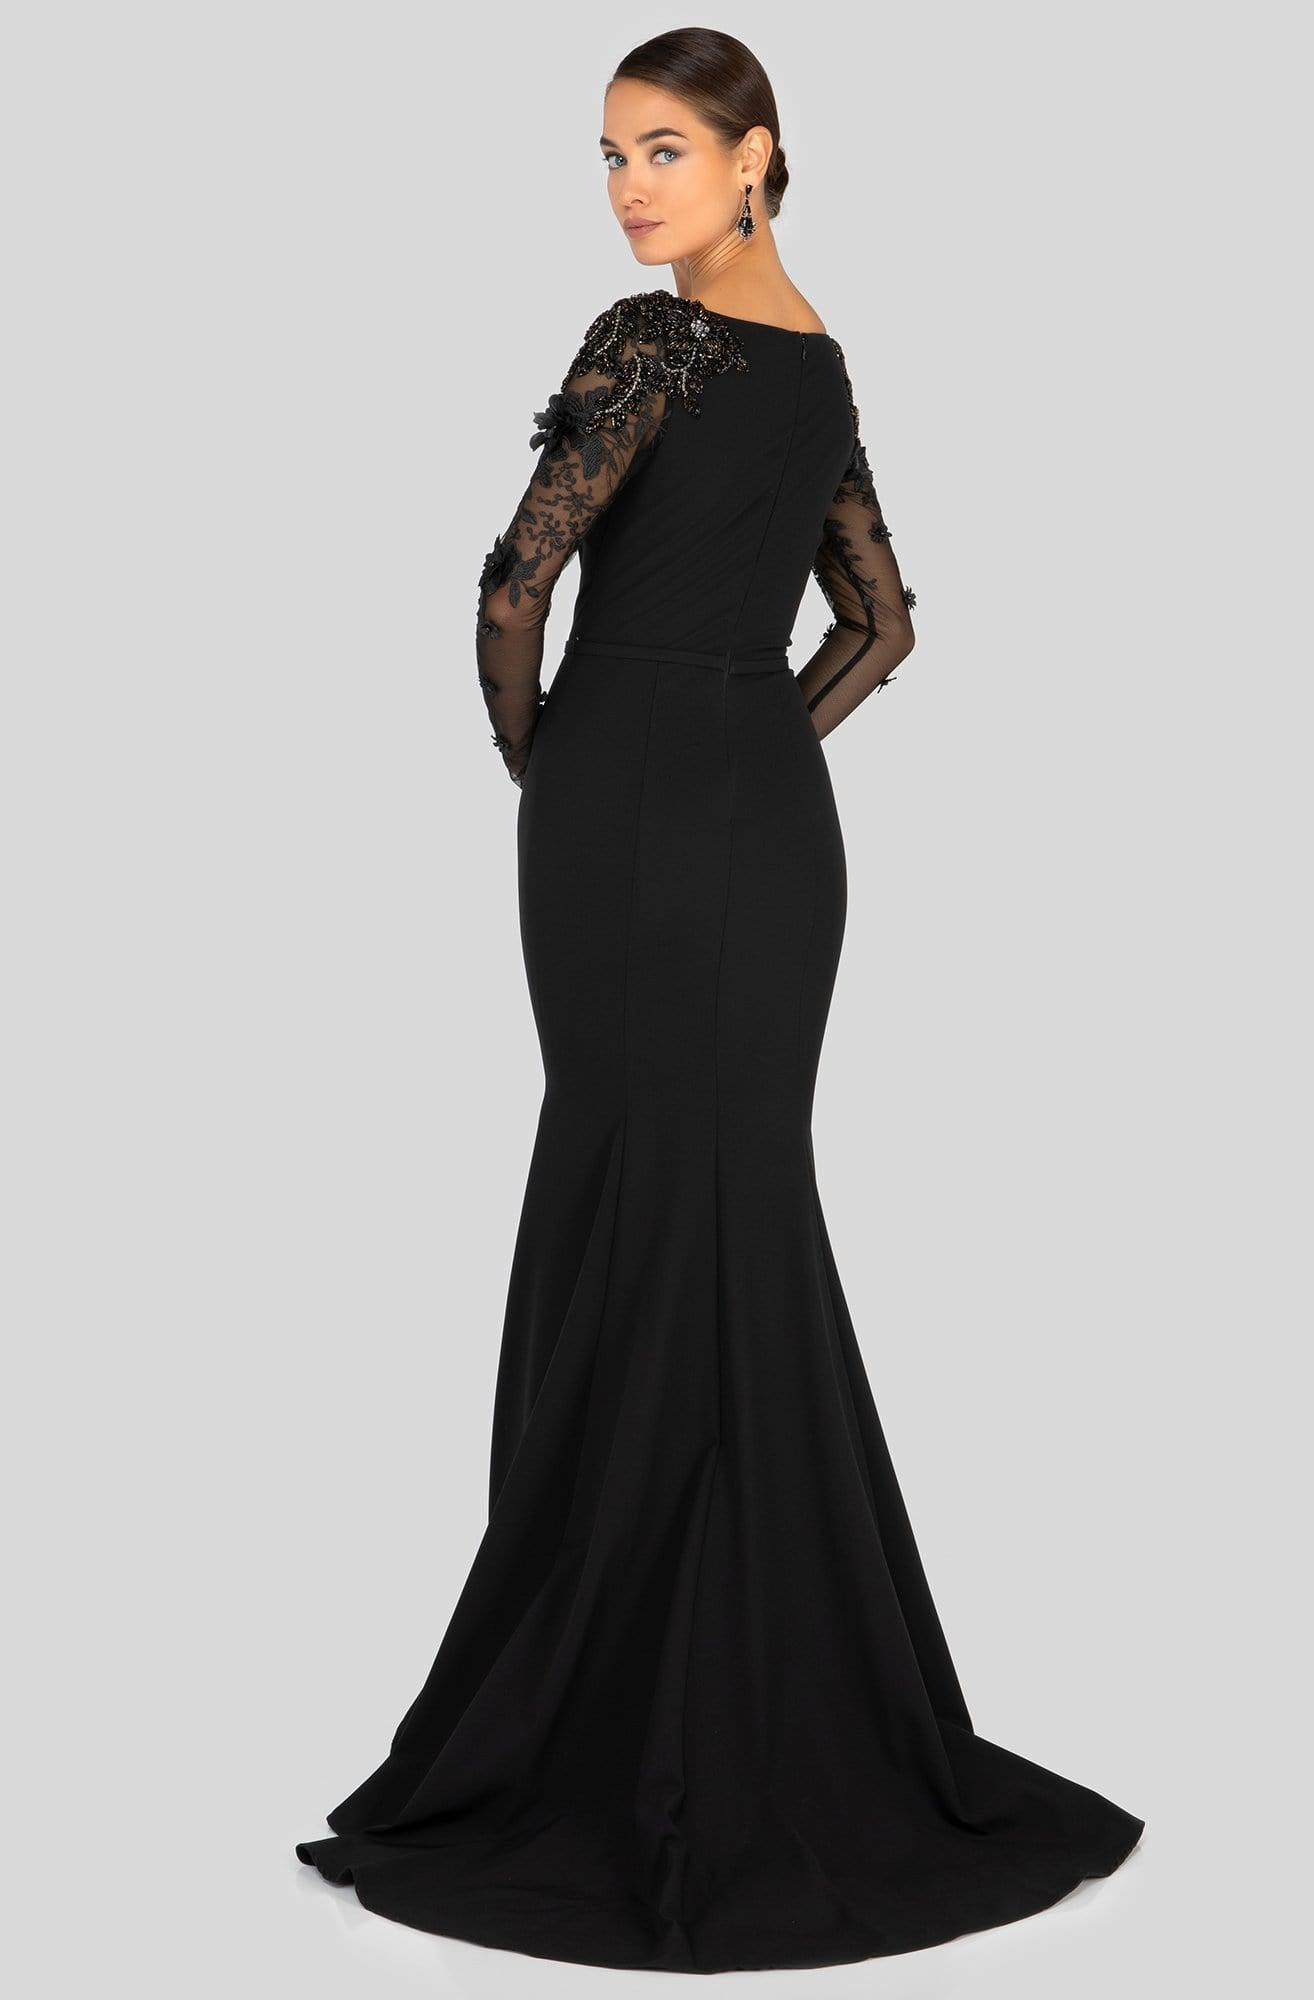 Terani Couture - 1912E9179 Long Sleeve Applique Bateau Trumpet Dress in Black